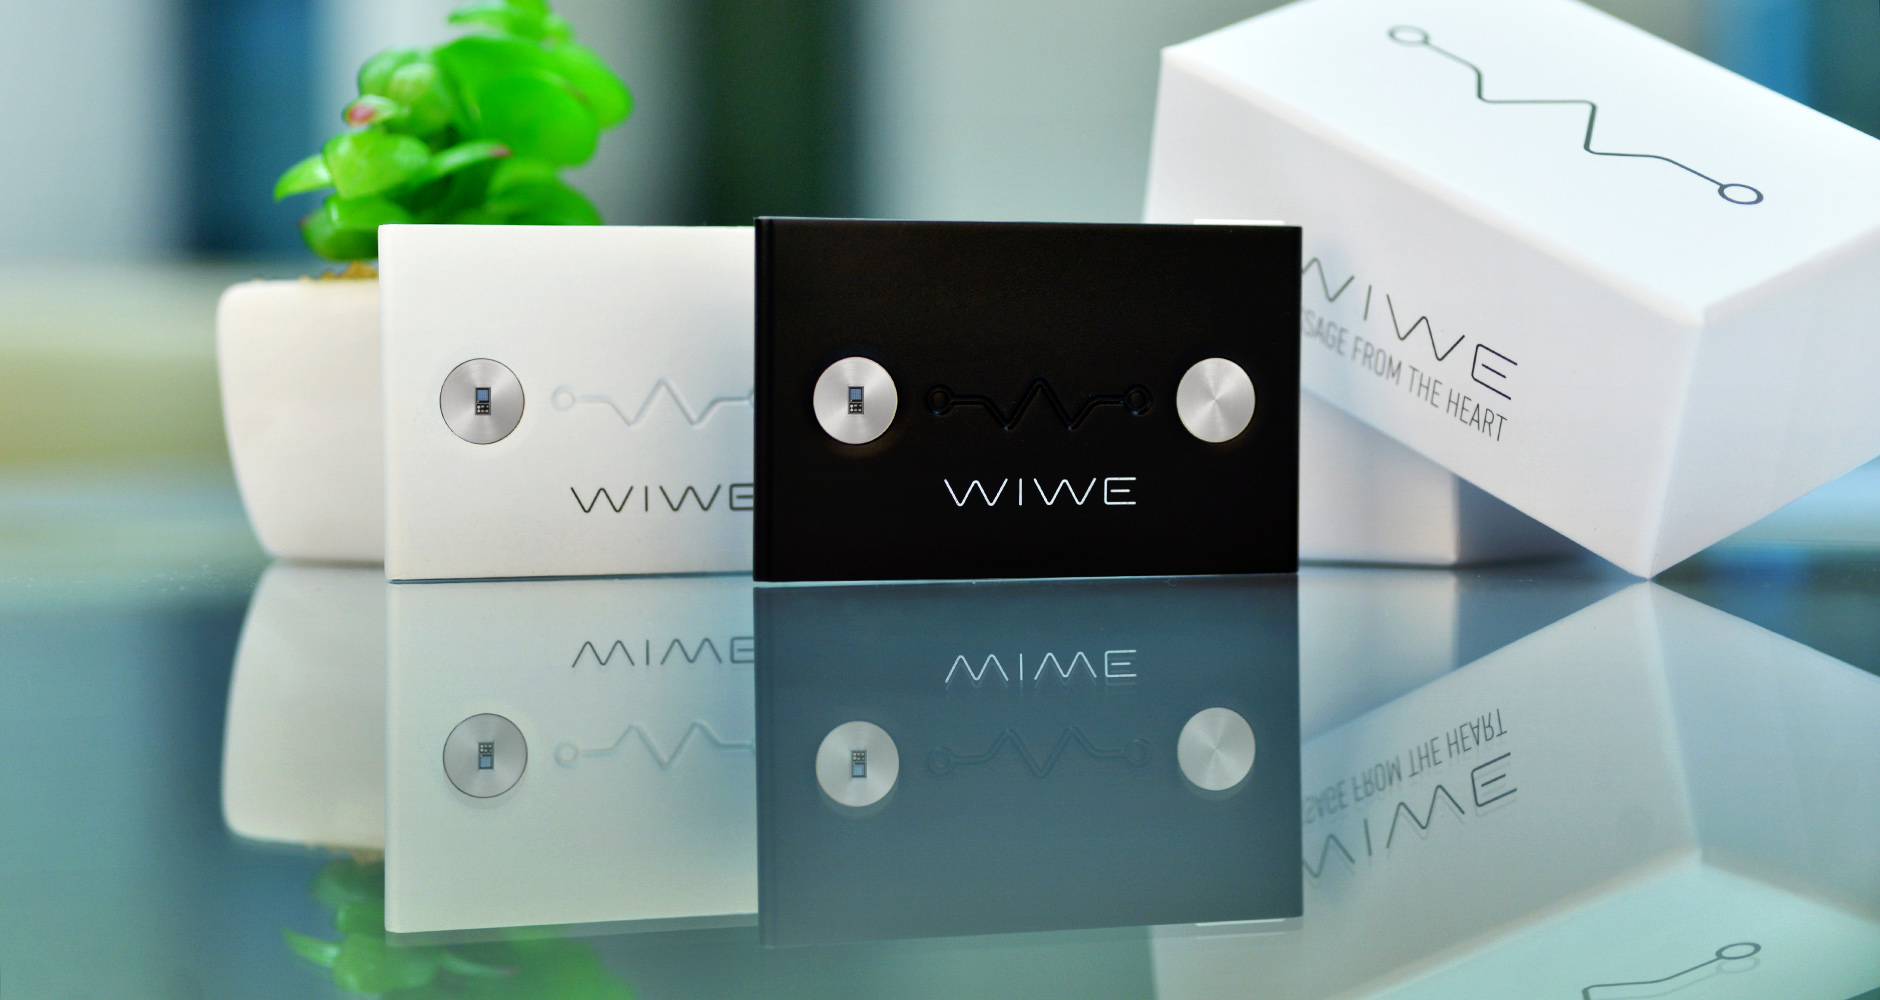 What does WIWE do?